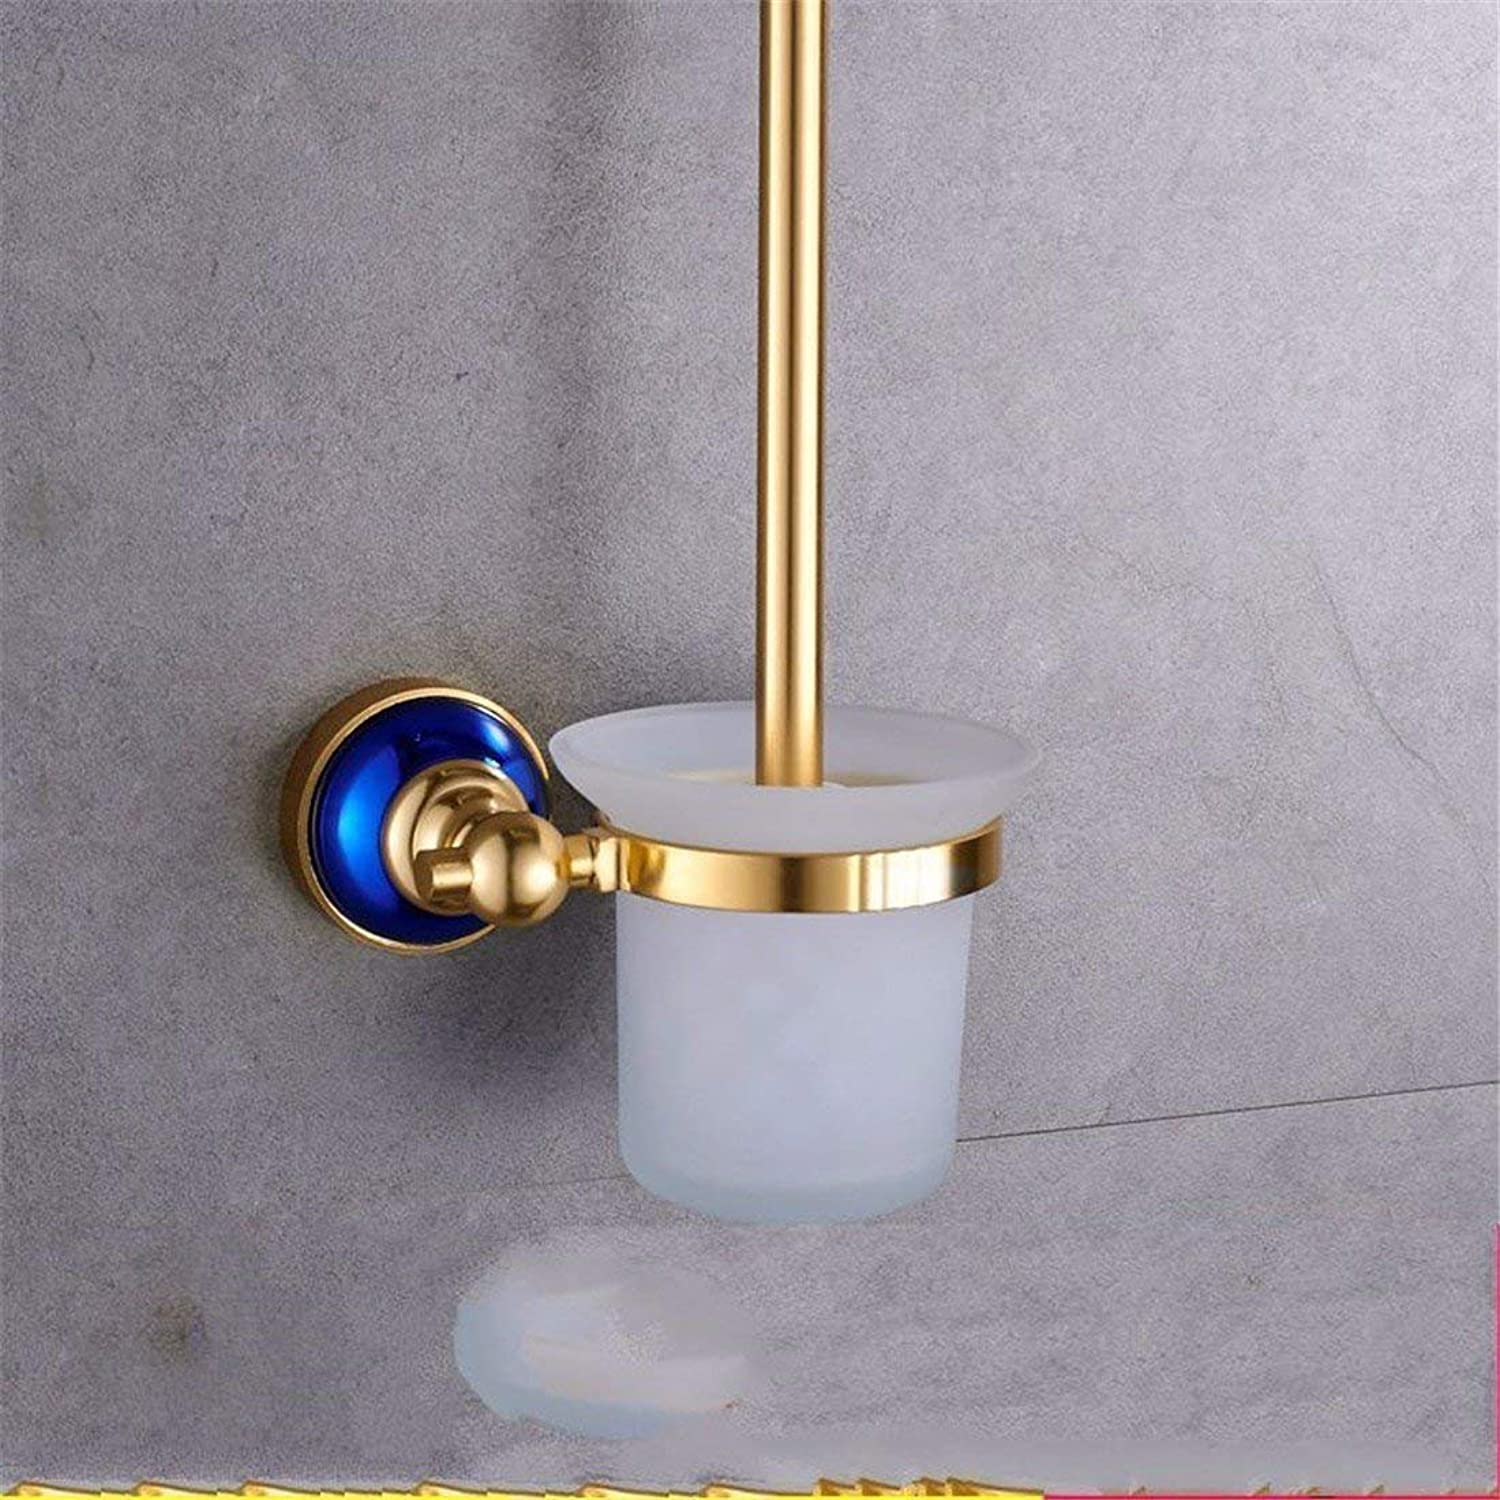 European Style Old bluee, Base of The Aluminum, Toilet Paper, Accessories of Bathroom, Cabinet,Boxes to soap Toilet Brush B